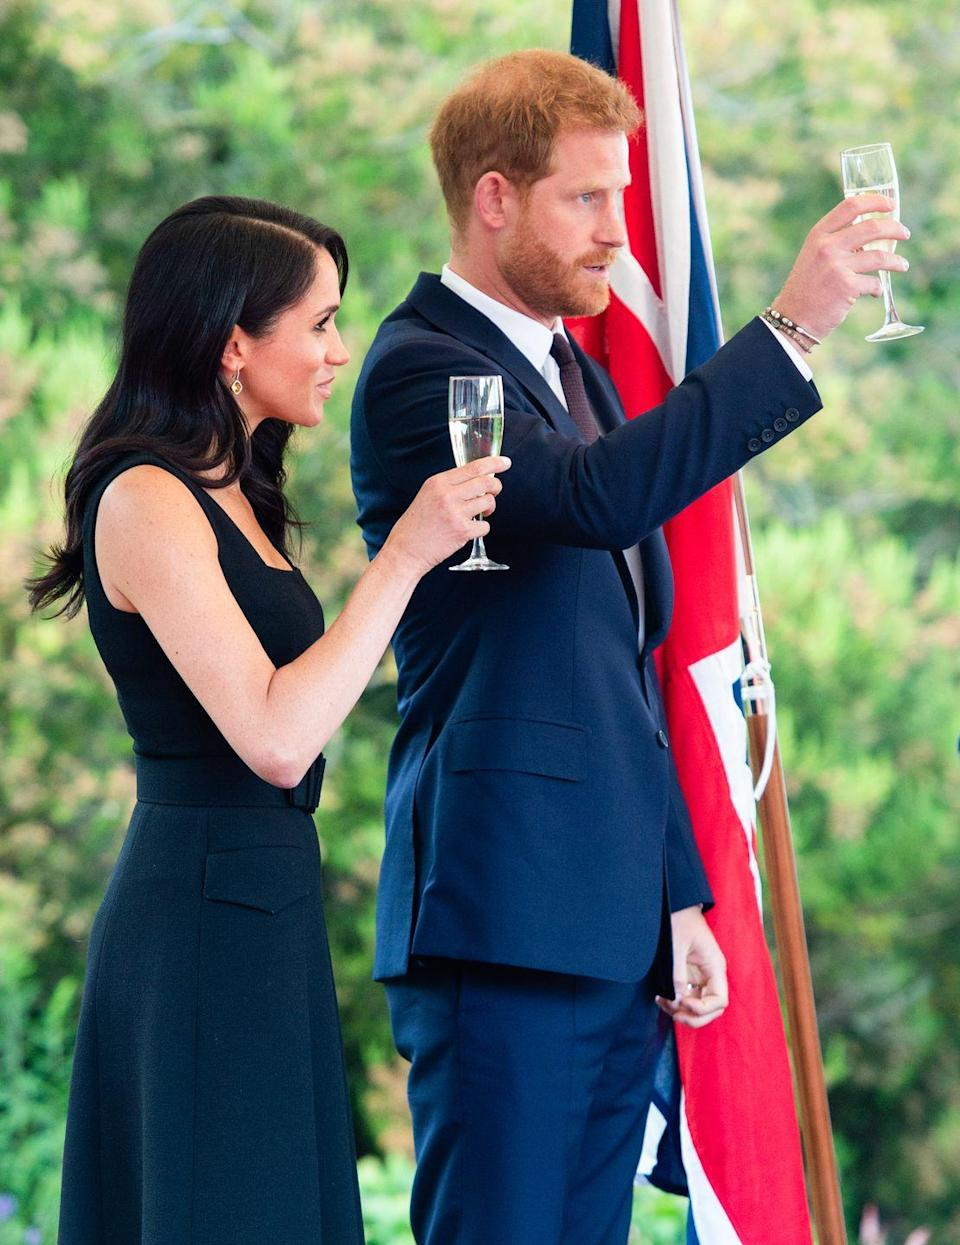 "<p>In order to do so, they have to <a href=""https://www.countryliving.com/uk/create/food-and-drink/news/a3272/royal-family-dining-etiquette-rule/"" rel=""nofollow noopener"" target=""_blank"" data-ylk=""slk:point"" class=""link rapid-noclick-resp"">point</a> the handles of their forks and knives at the bottom right of the plate instead of crossing them. That's ""yeah, I'm done here"" in Royal. </p>"